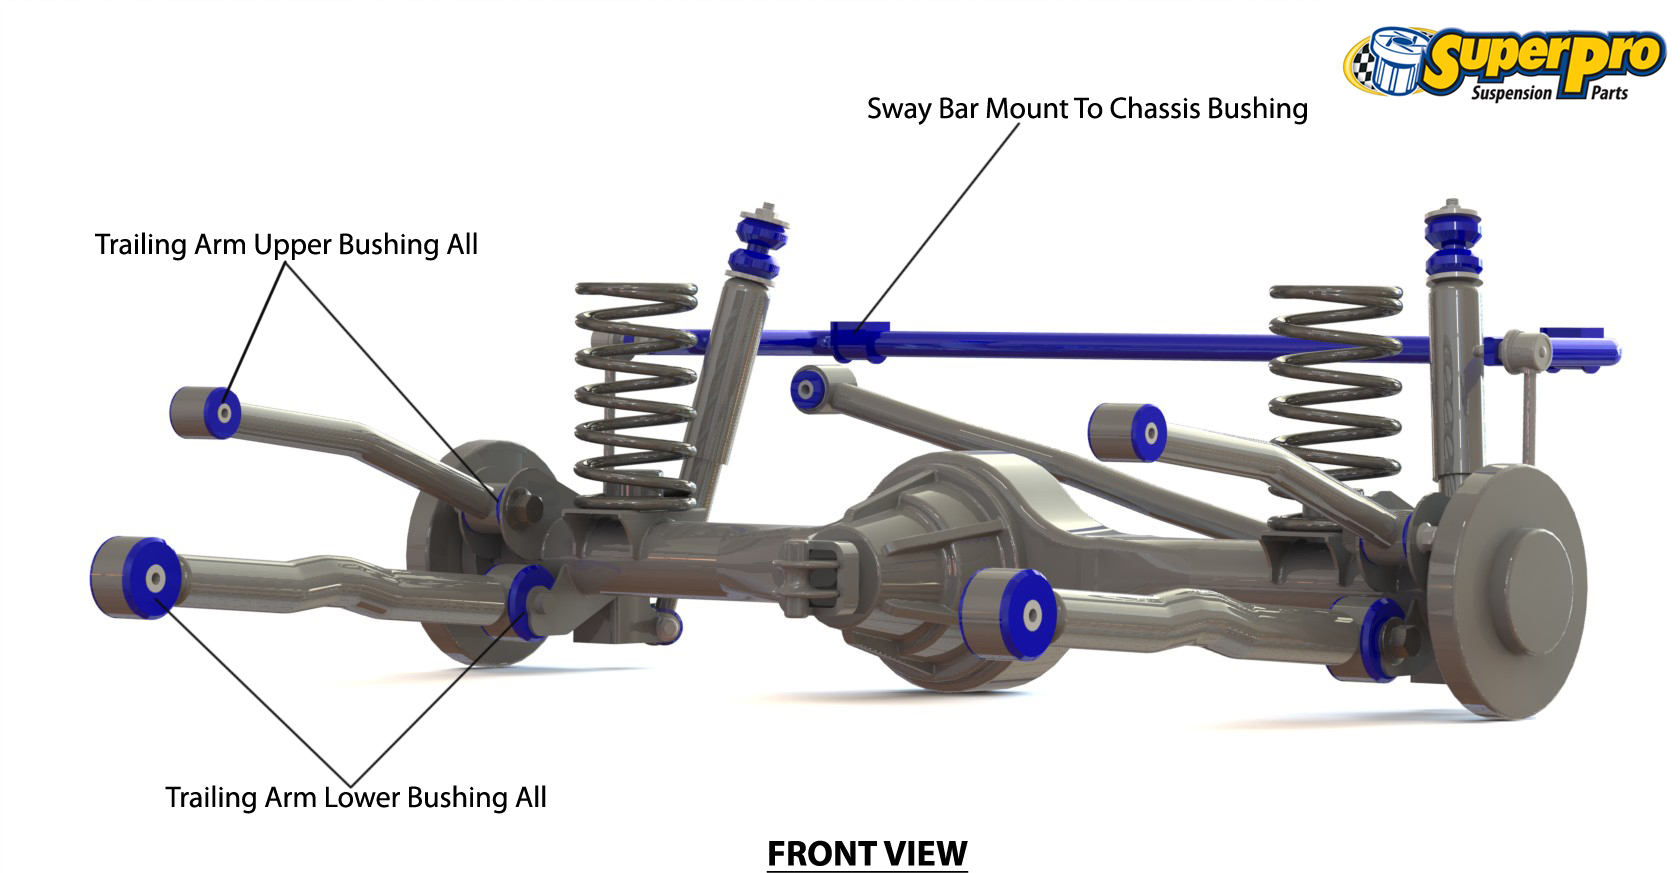 2006 suzuki xl7 engine diagram Images Gallery. superpro suspension parts  and poly bushings for suzuki